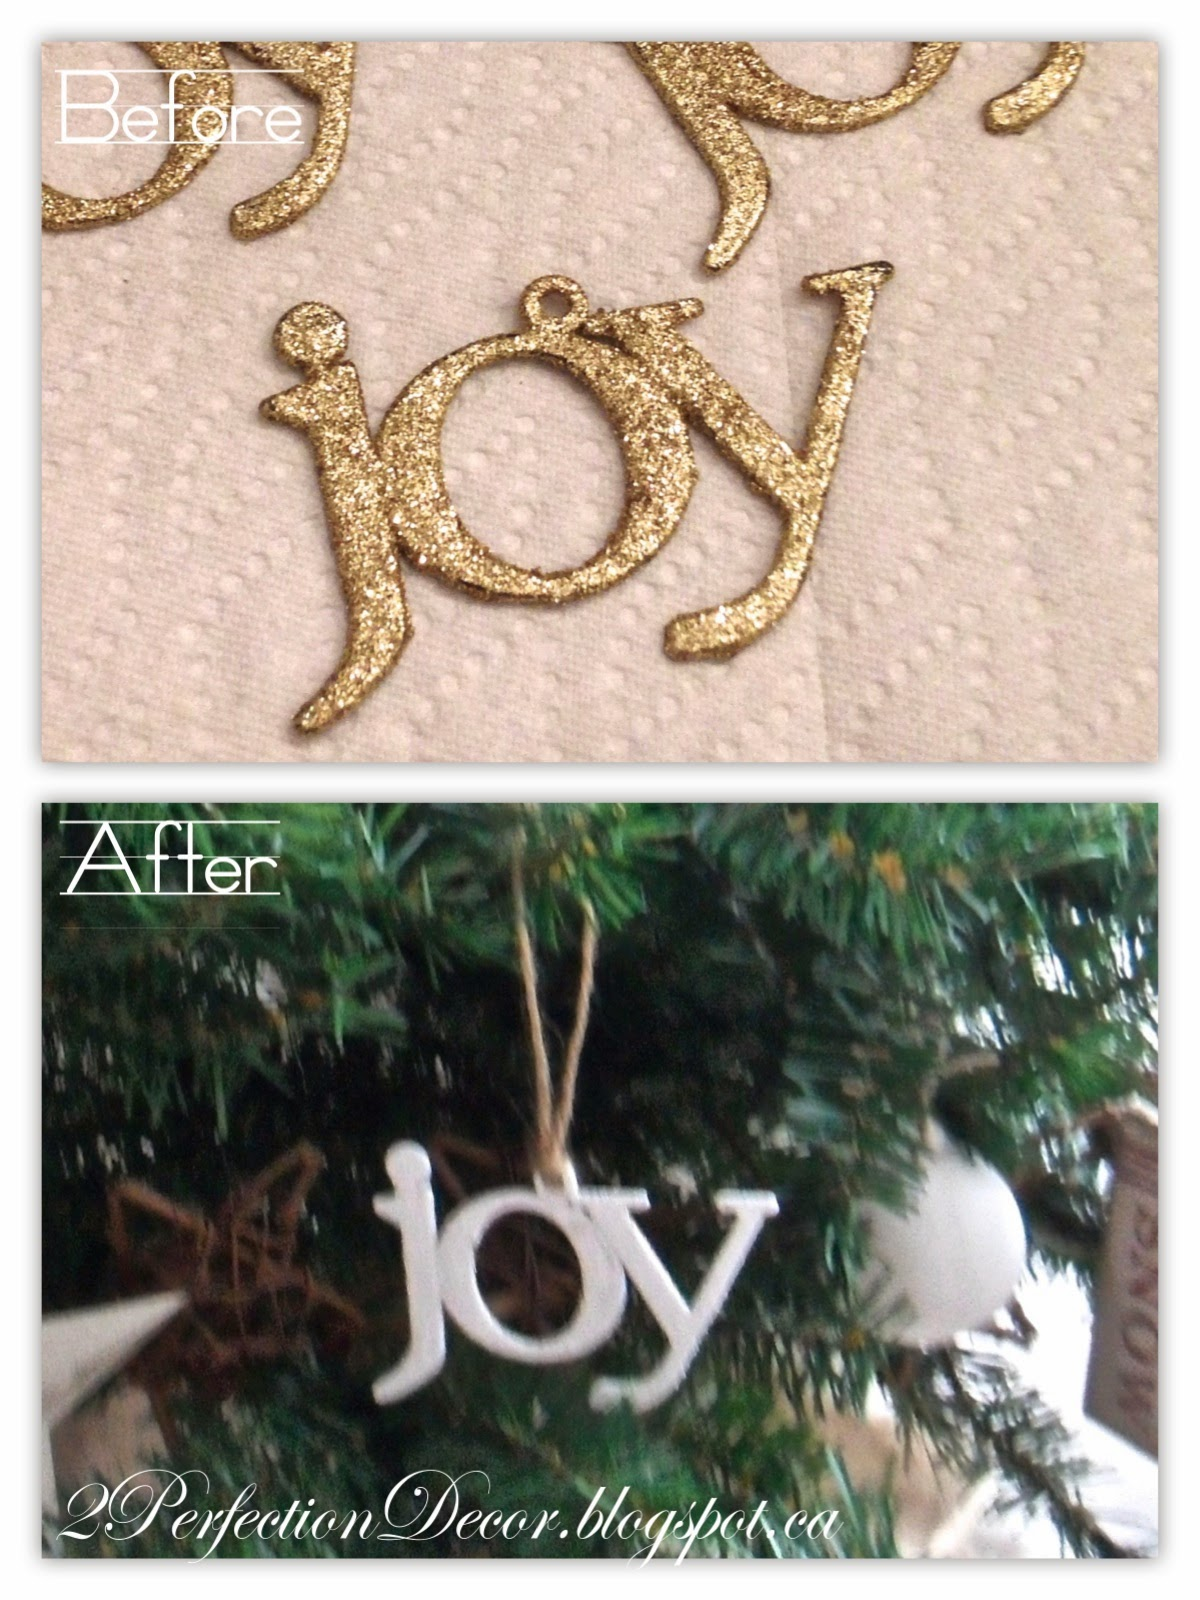 2Perfection Decor JOY Dollar Store Ornaments with a simple twist